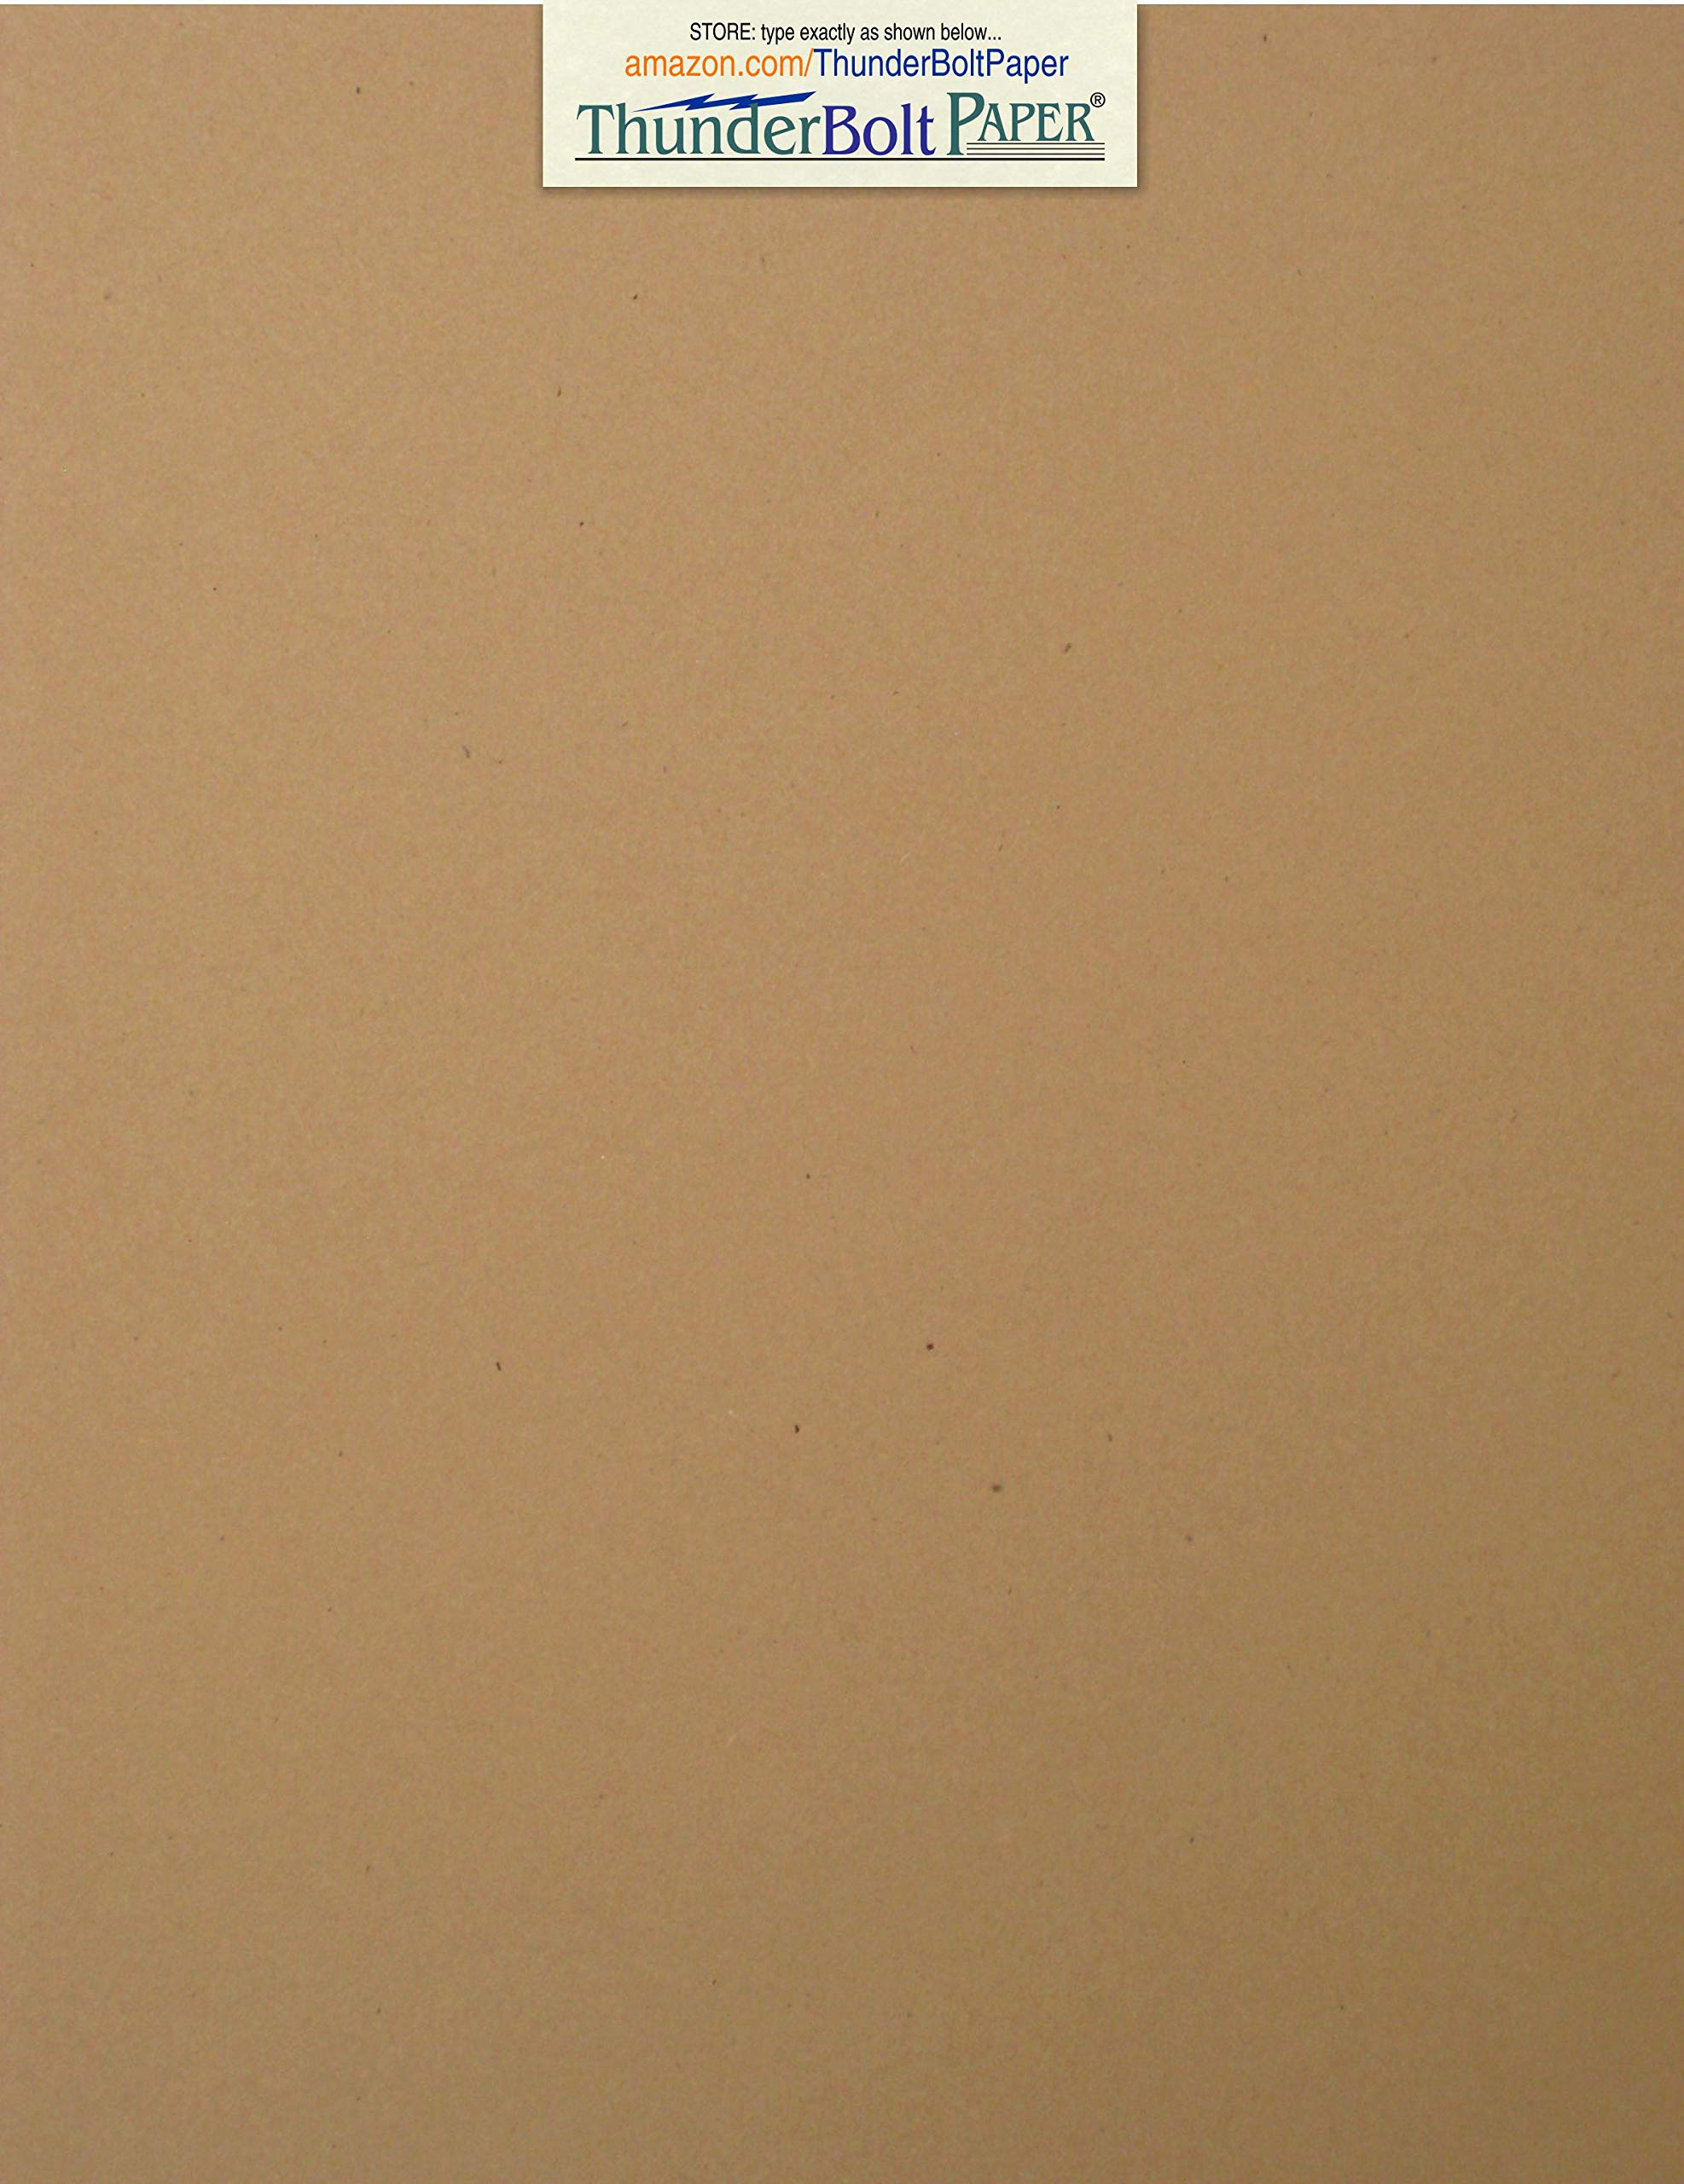 100 Brown Kraft Fiber 80# Cover Paper Sheets - 8.5'' X 11'' (8.5X11 Inches) Standard Letter|Flyer Size - Rich Earthy Color with Natural Fibers - 80lb/Pound Cardstock - Smooth Finish by ThunderBolt Paper